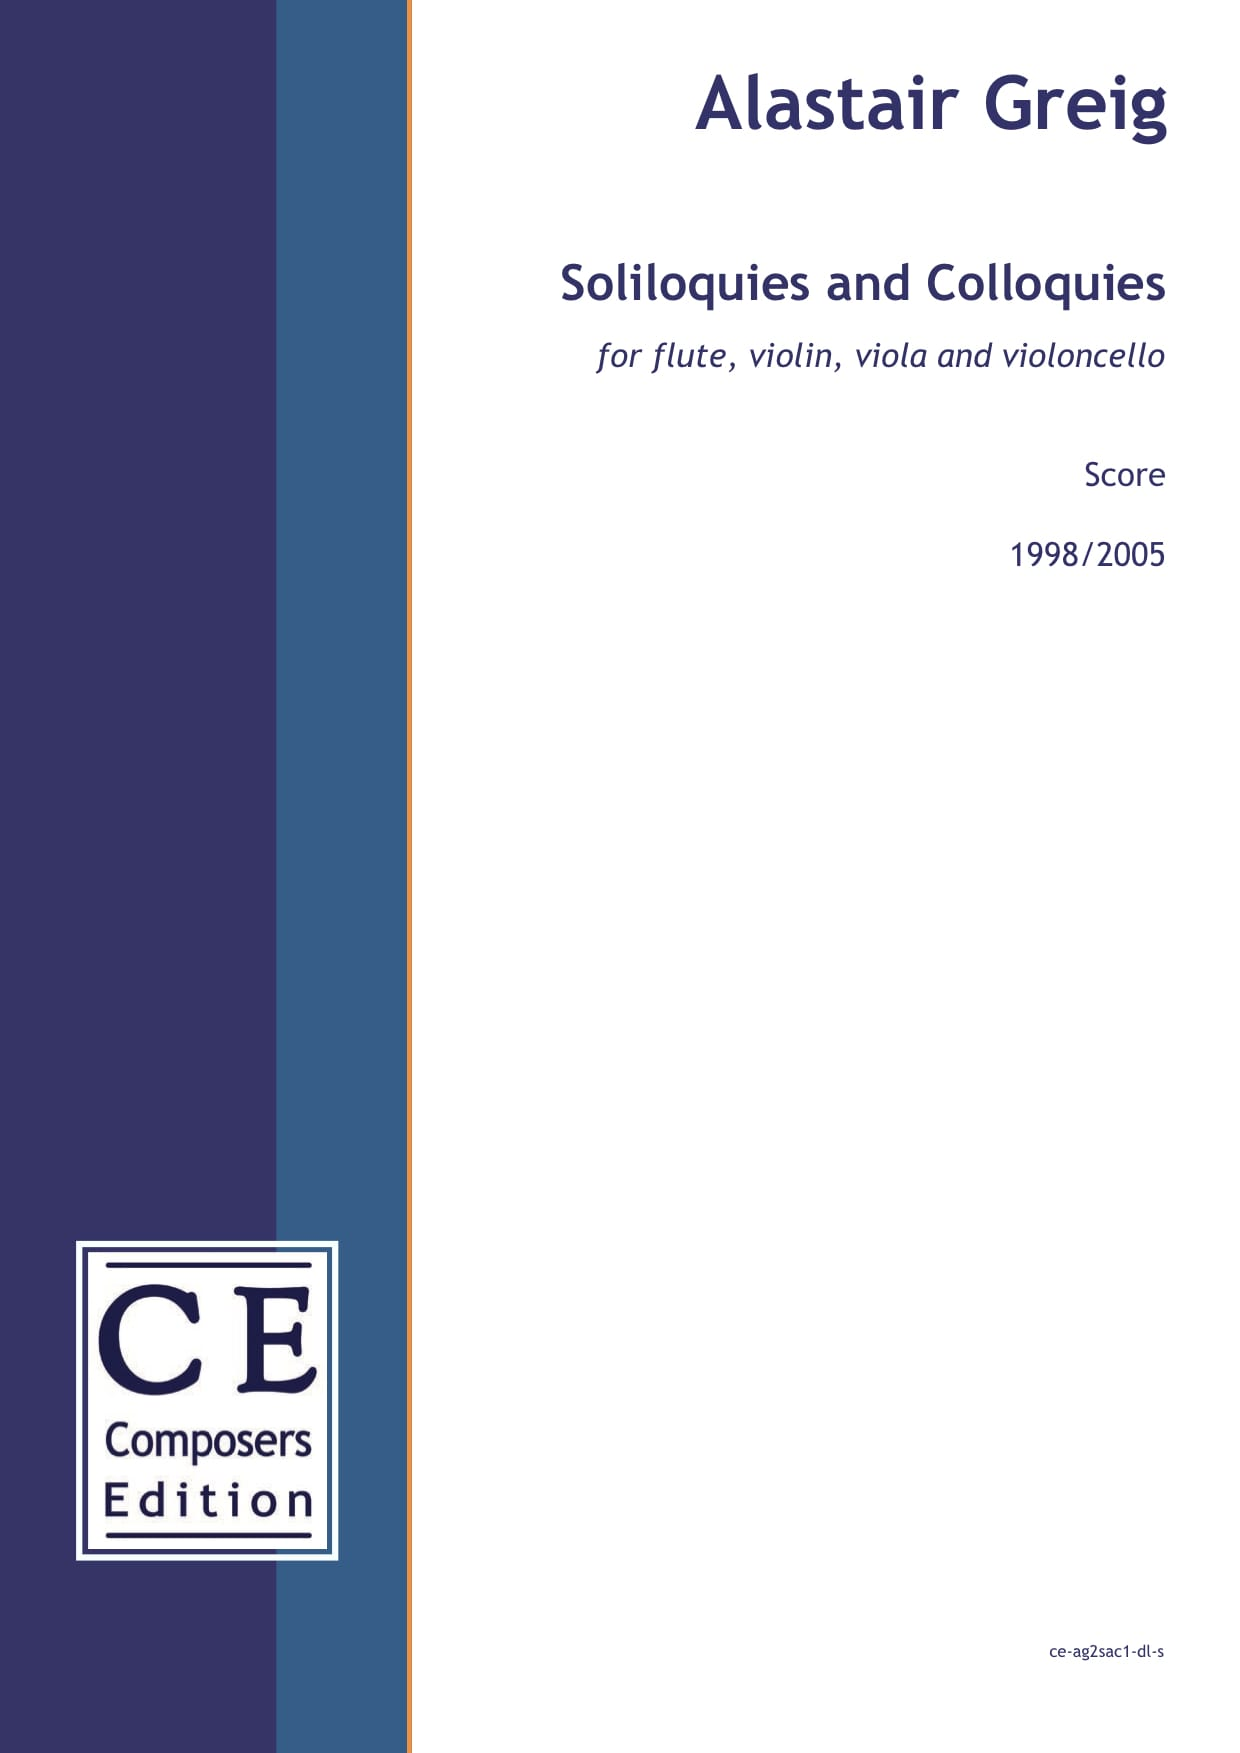 Alastair Greig: Soliloquies and Colloquies for flute, violin, viola and violoncello